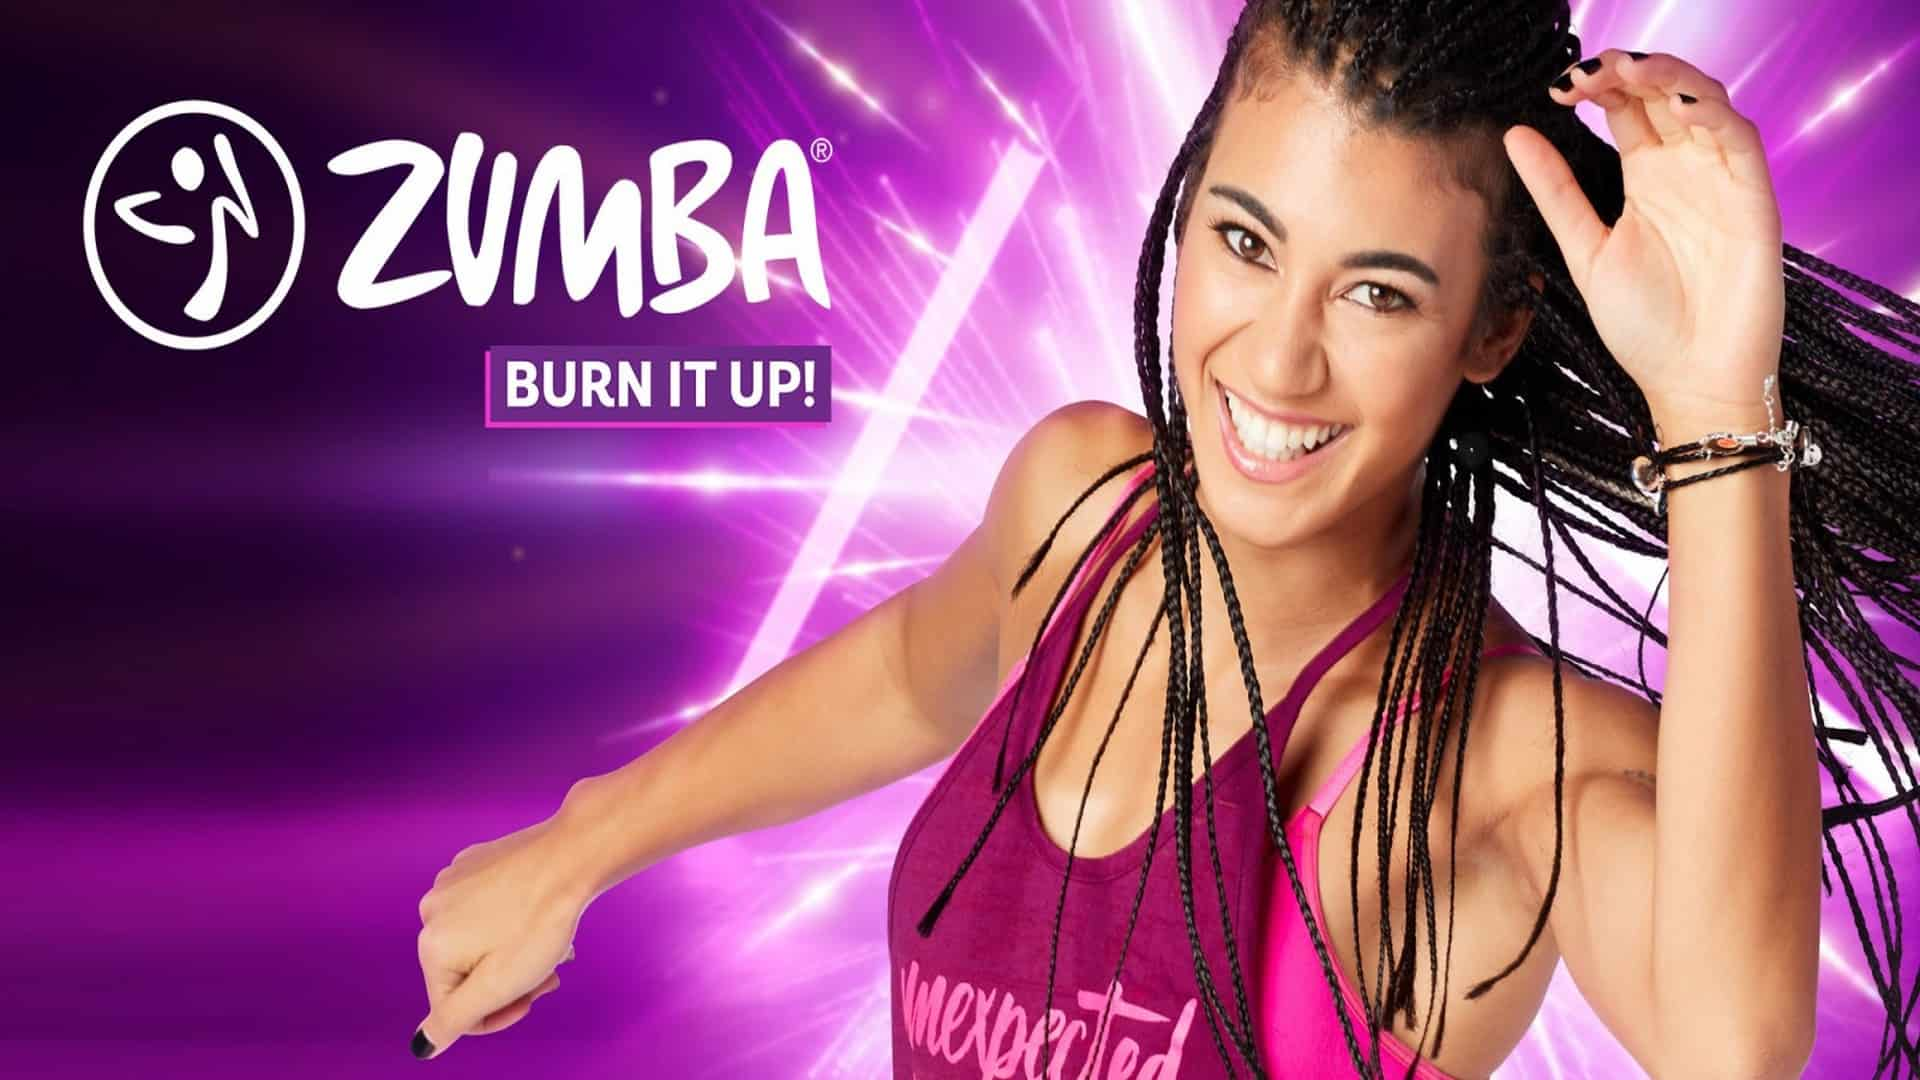 Zumba Burn It Up! For Nintendo Switch Now Available